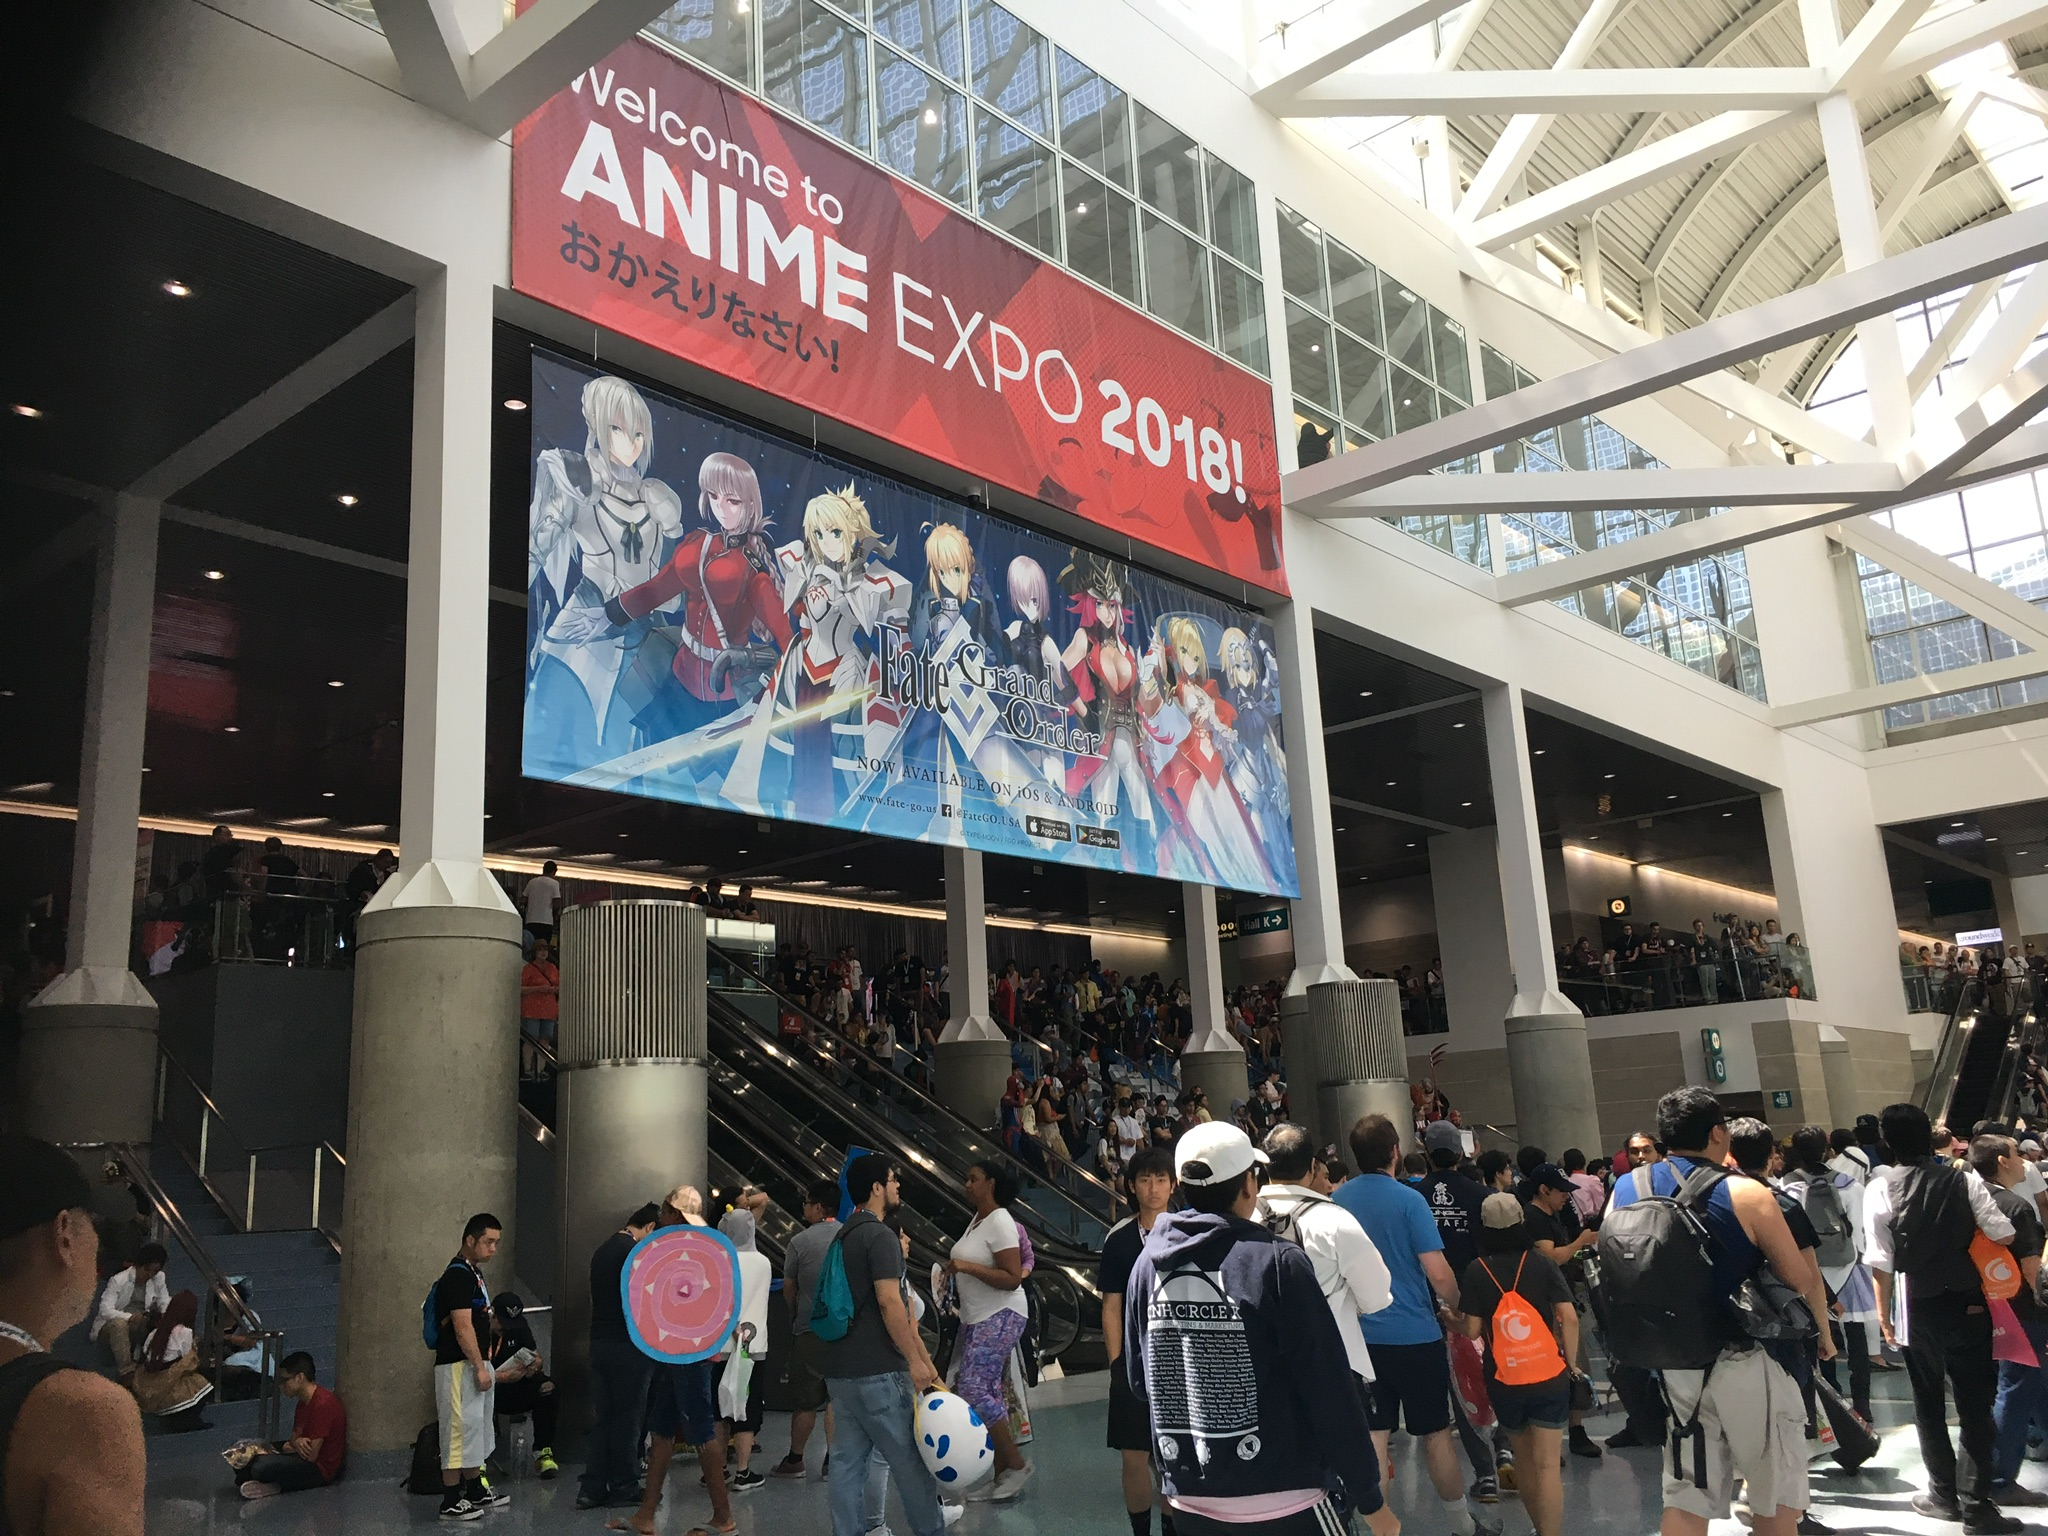 Hotter Than Ever Anime Expo 2018 Attracts Big Crowds